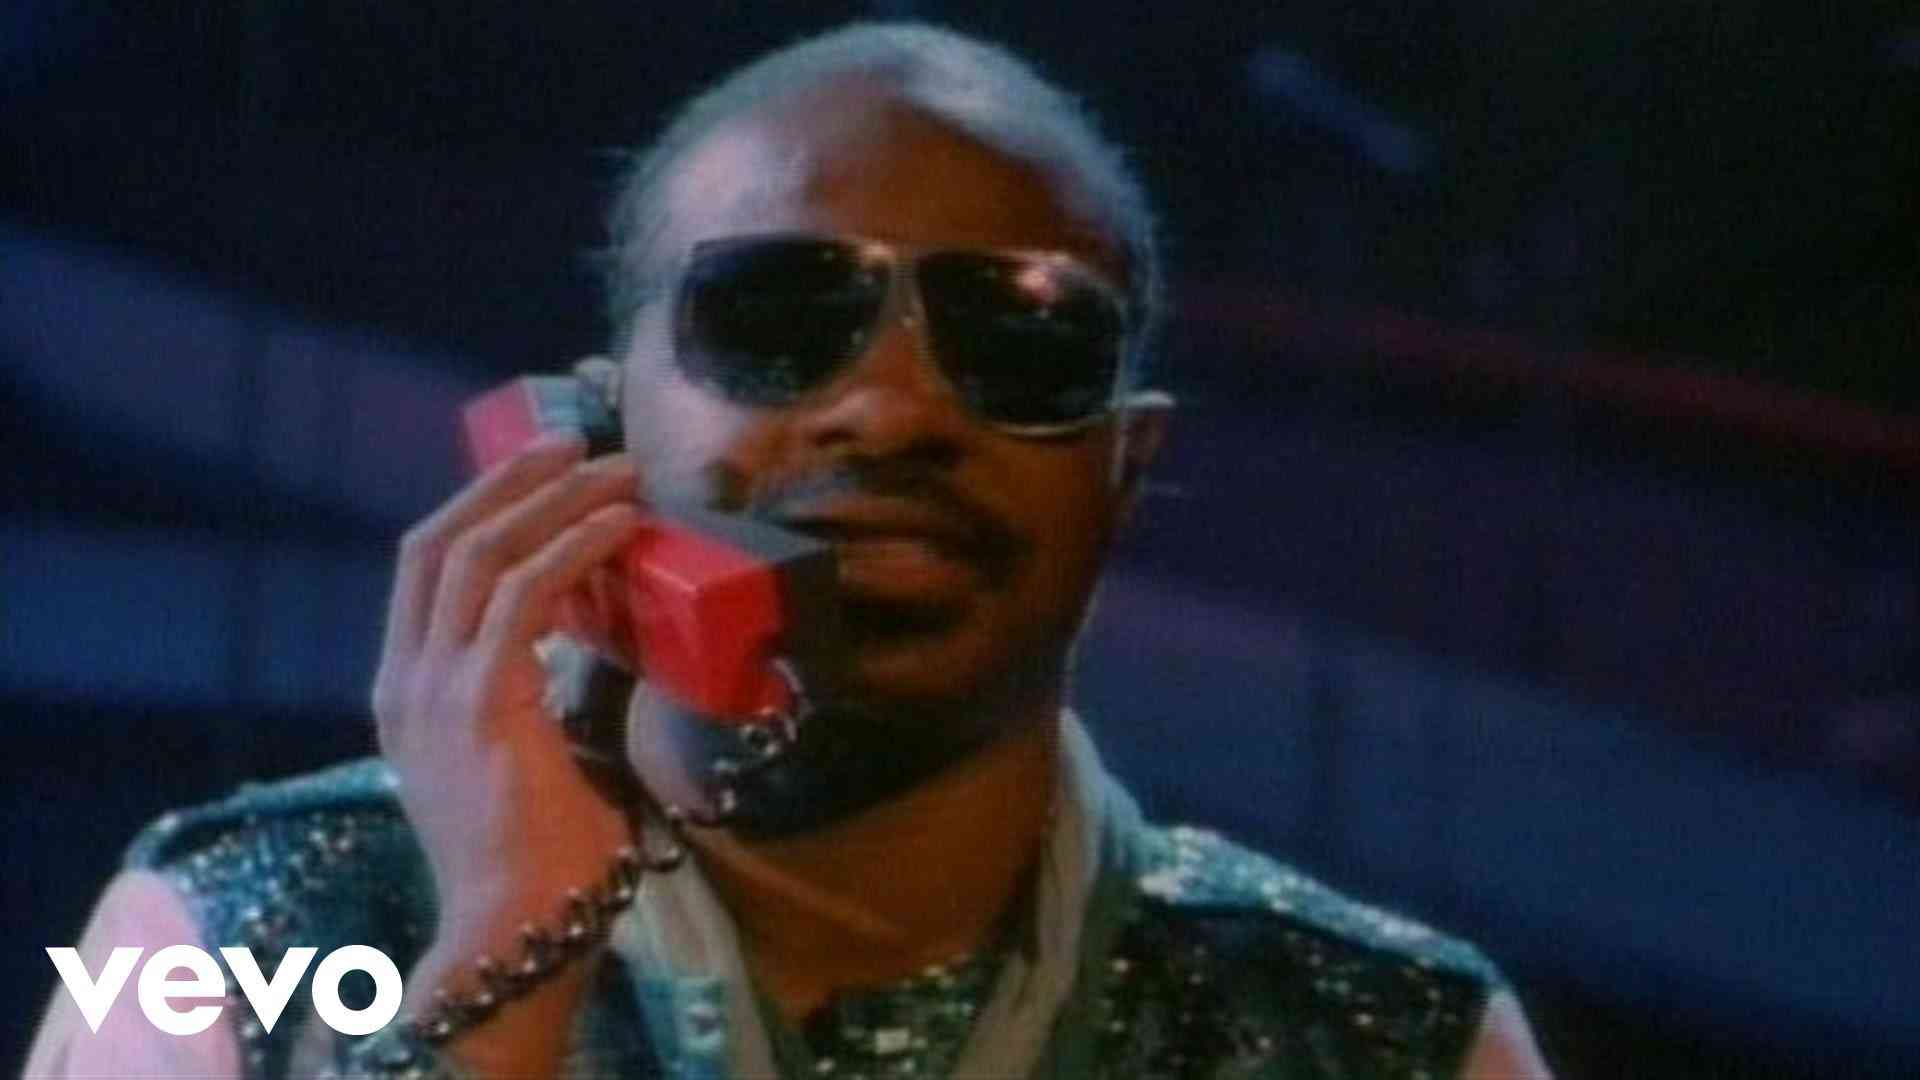 Stevie Wonder - I Just Called To Say I Love You - YouTube